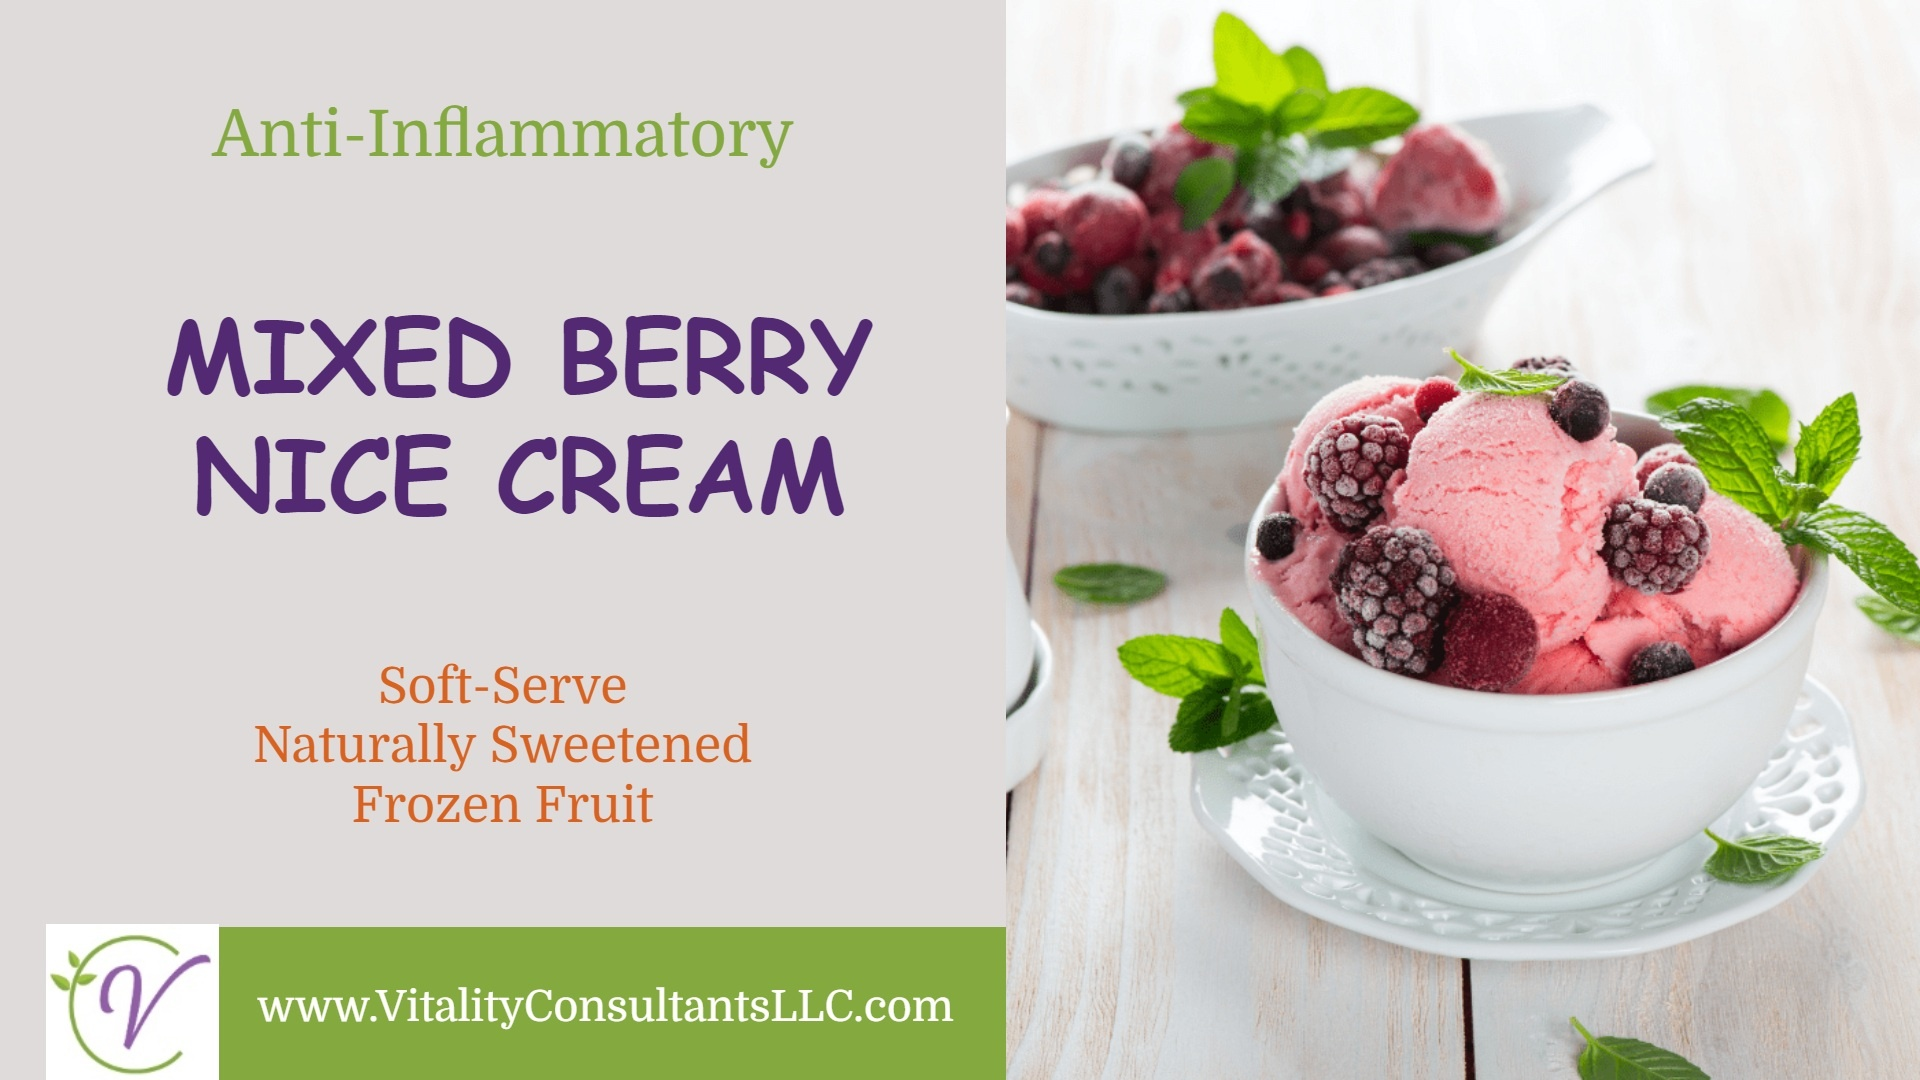 Mixed Berry Nice Cream